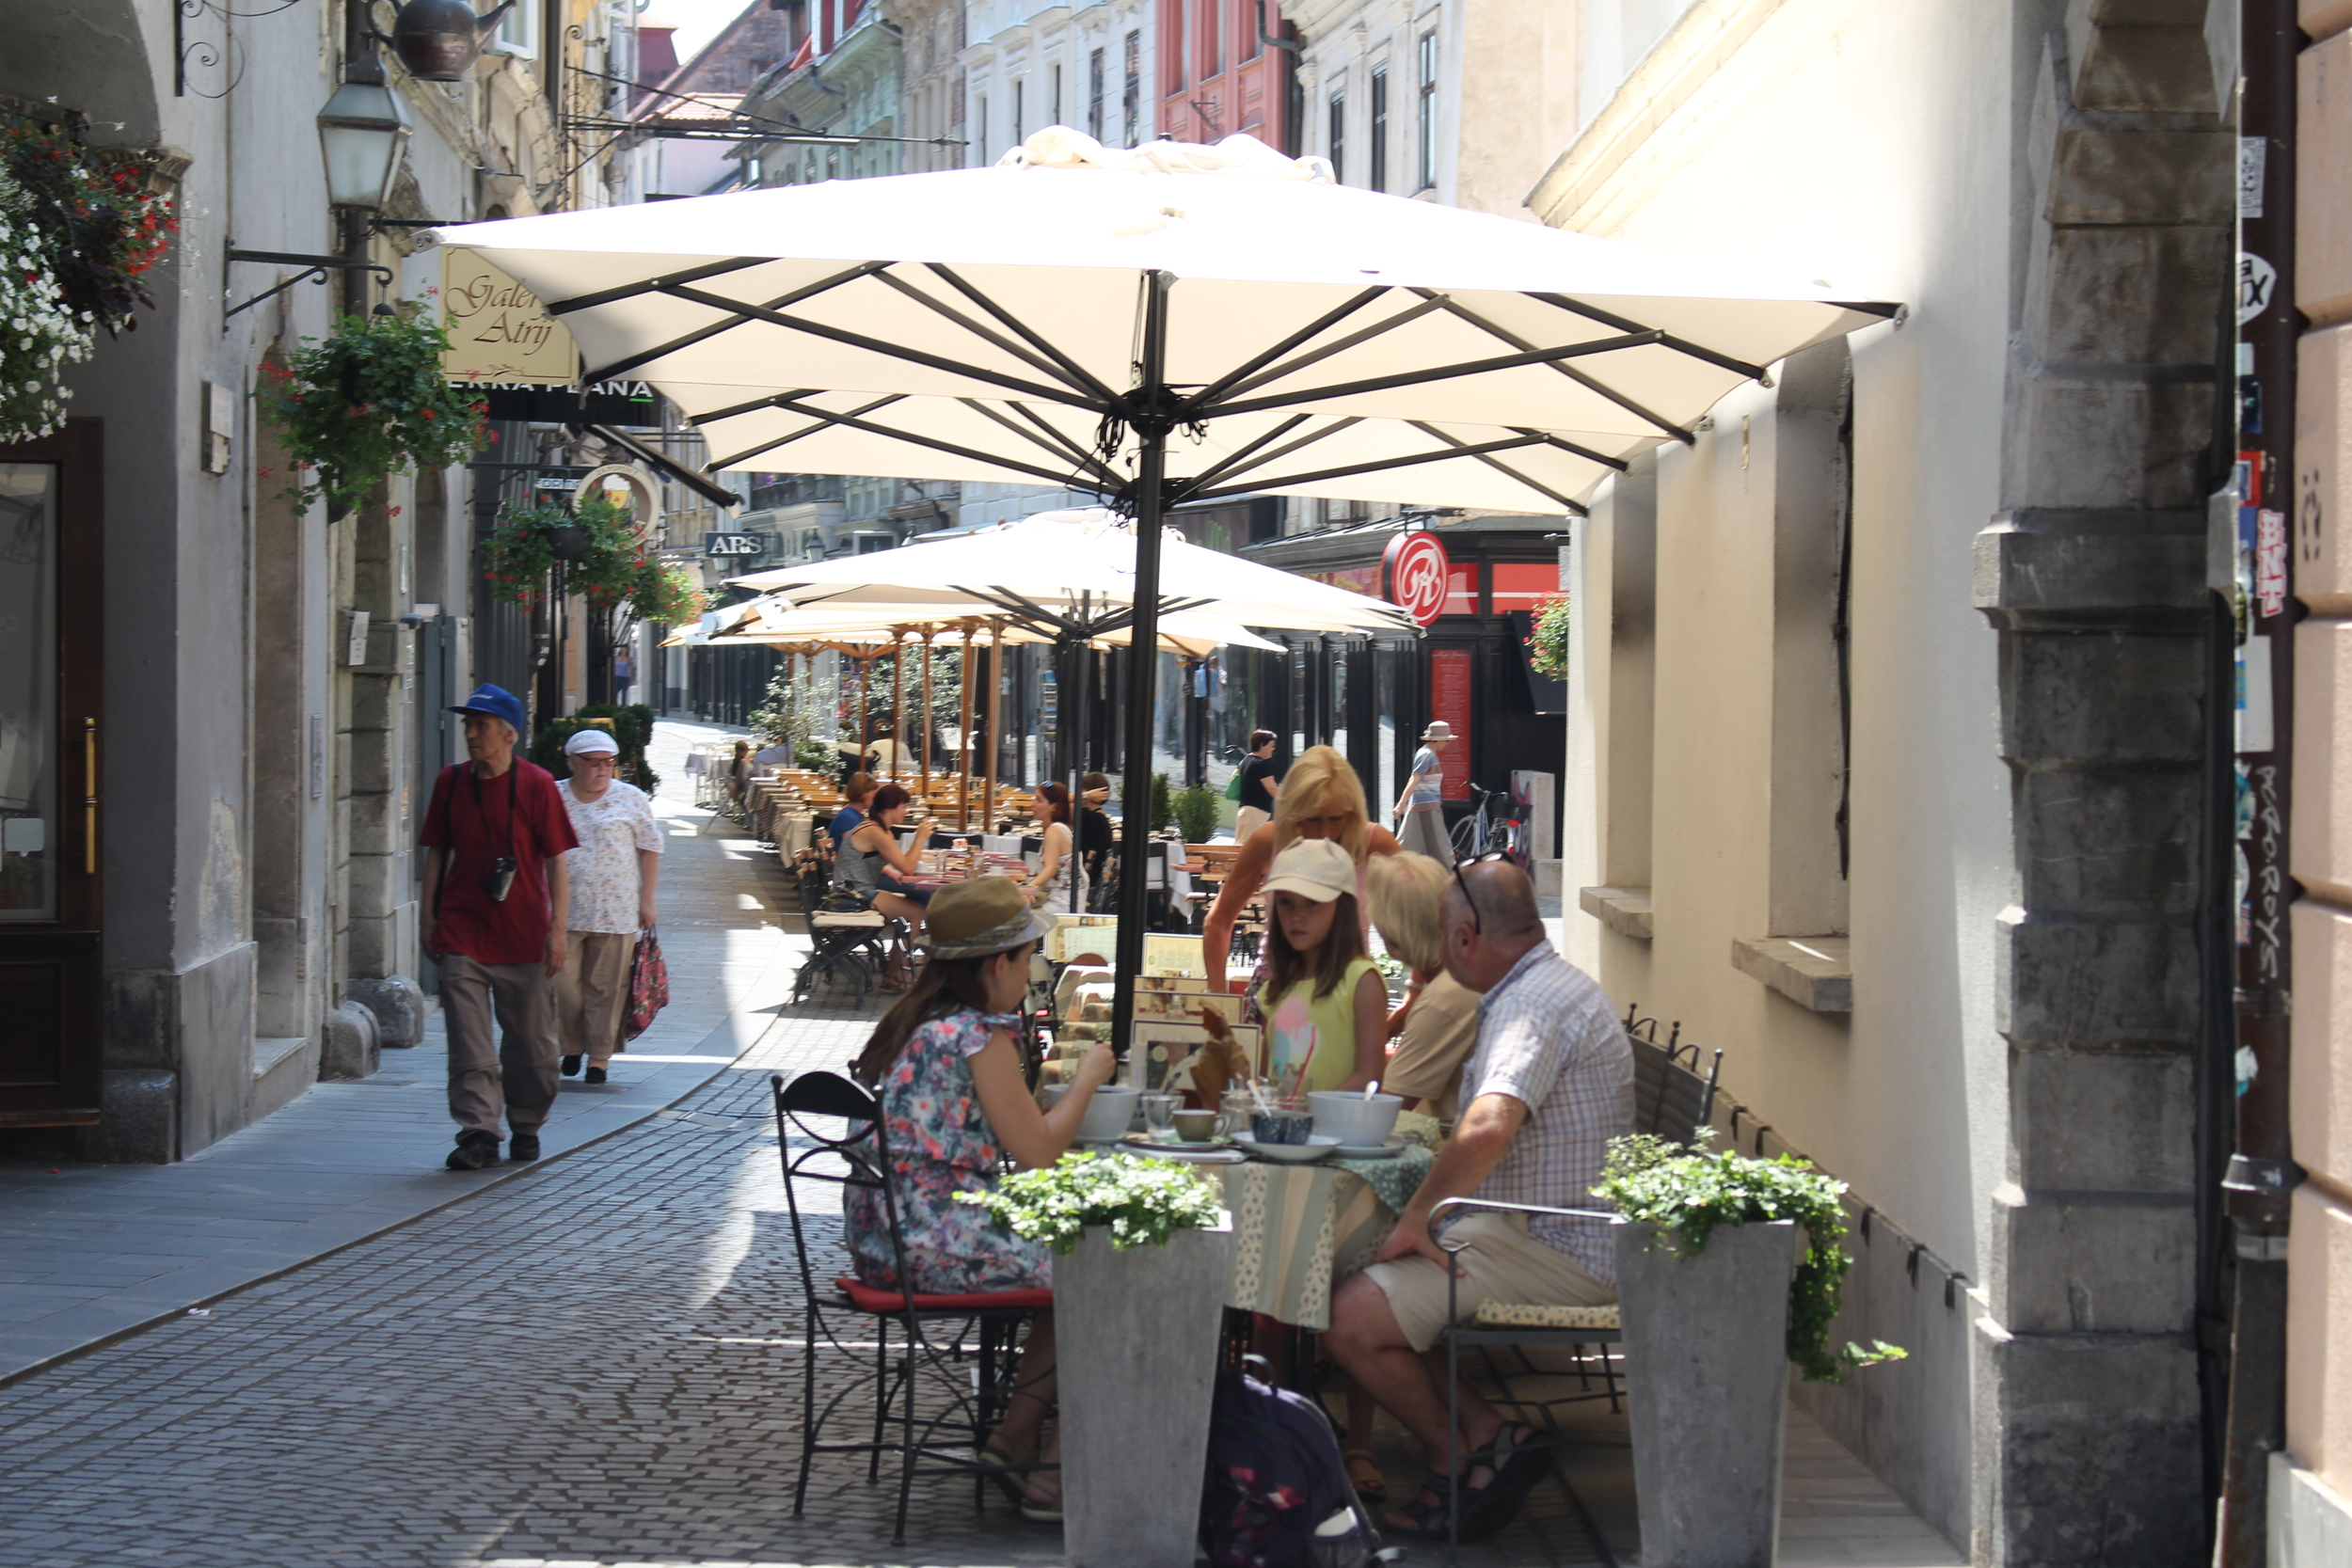 Shops and cafés in the Old town